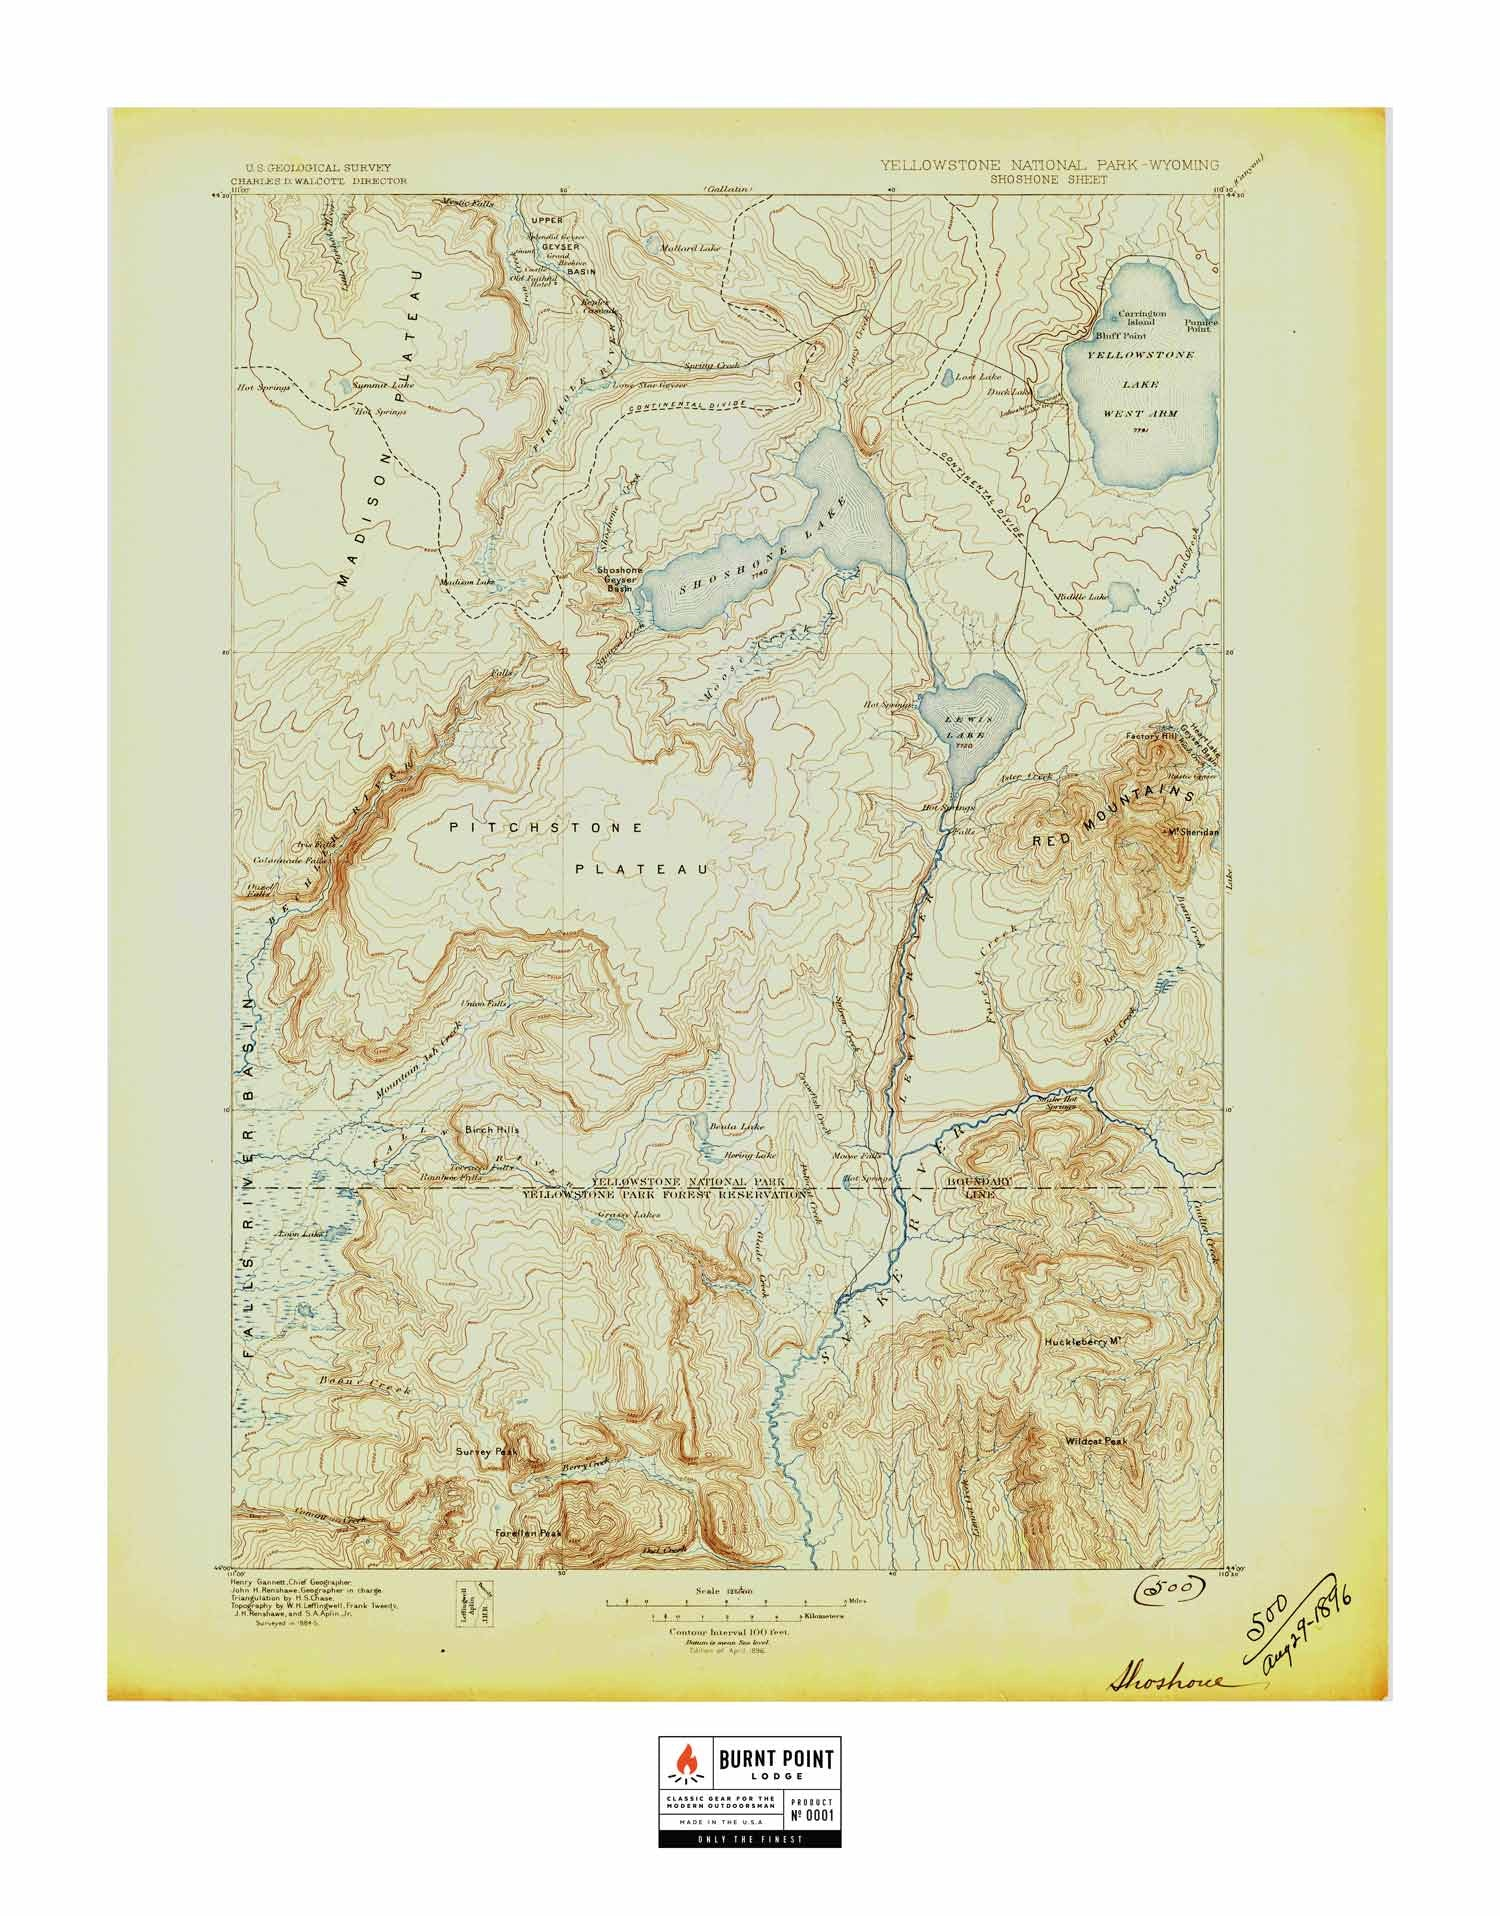 Historic US Topo Maps of National Parks Burnt Point Lodge